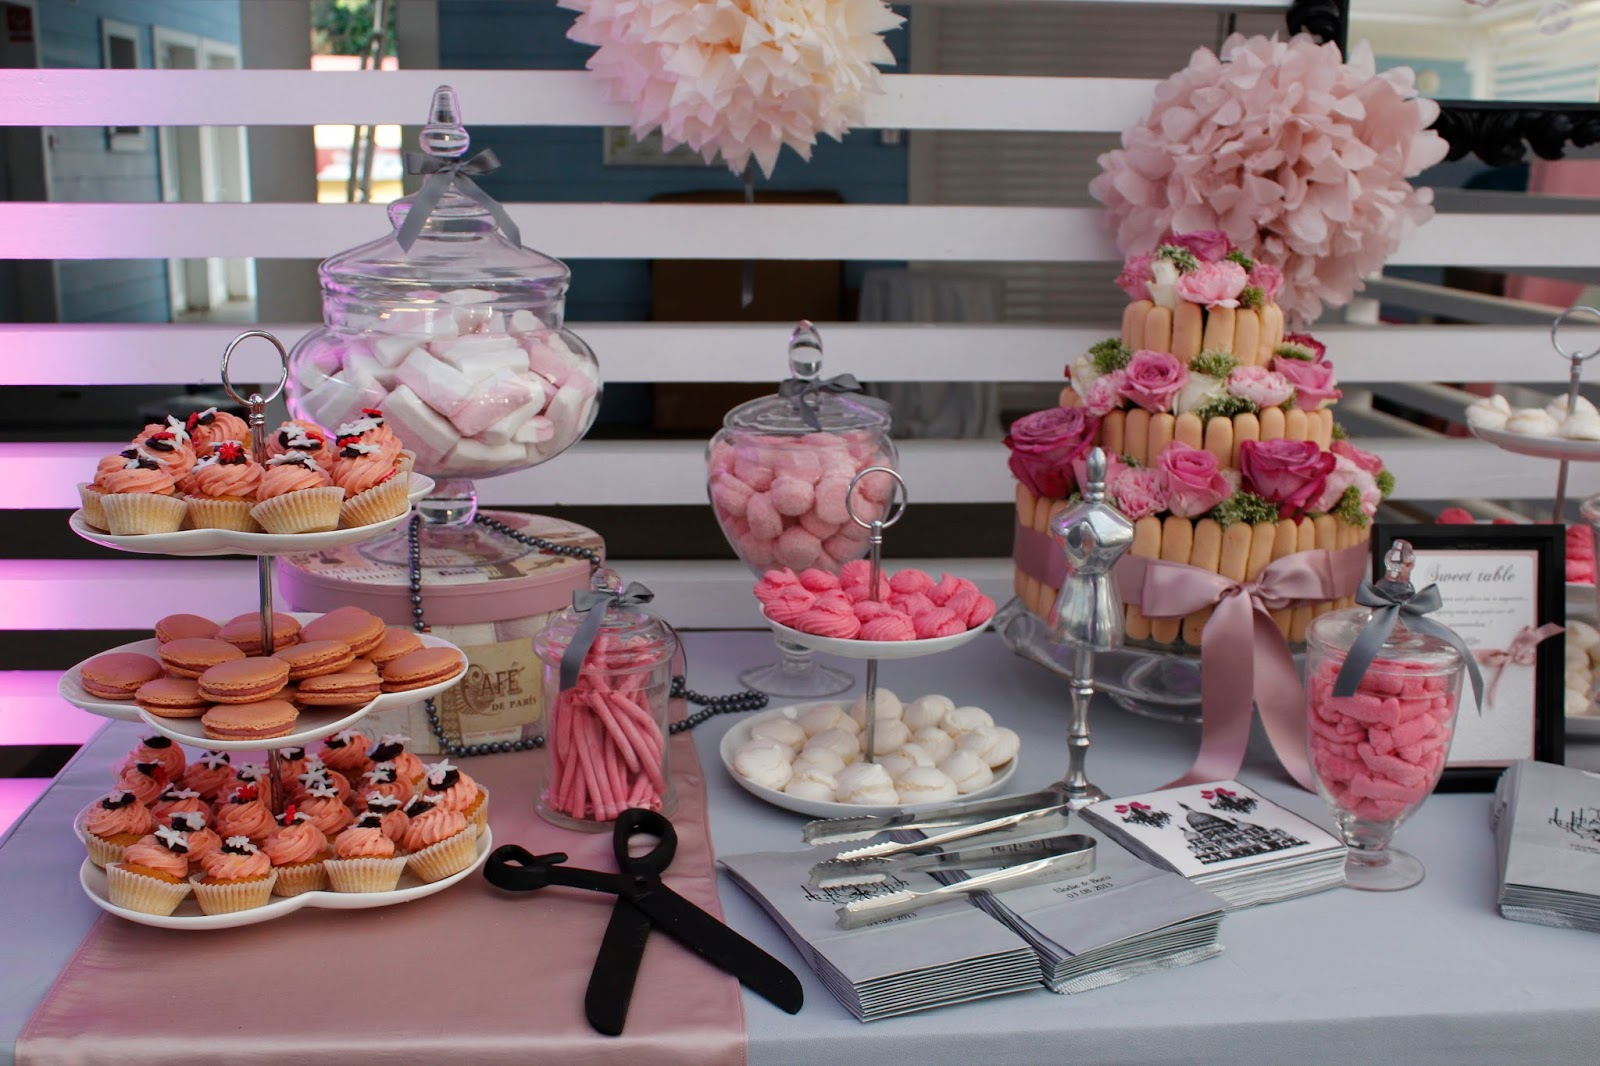 Sweet table mariage rose poudr le candy bar - Deco mariage rose poudre ...